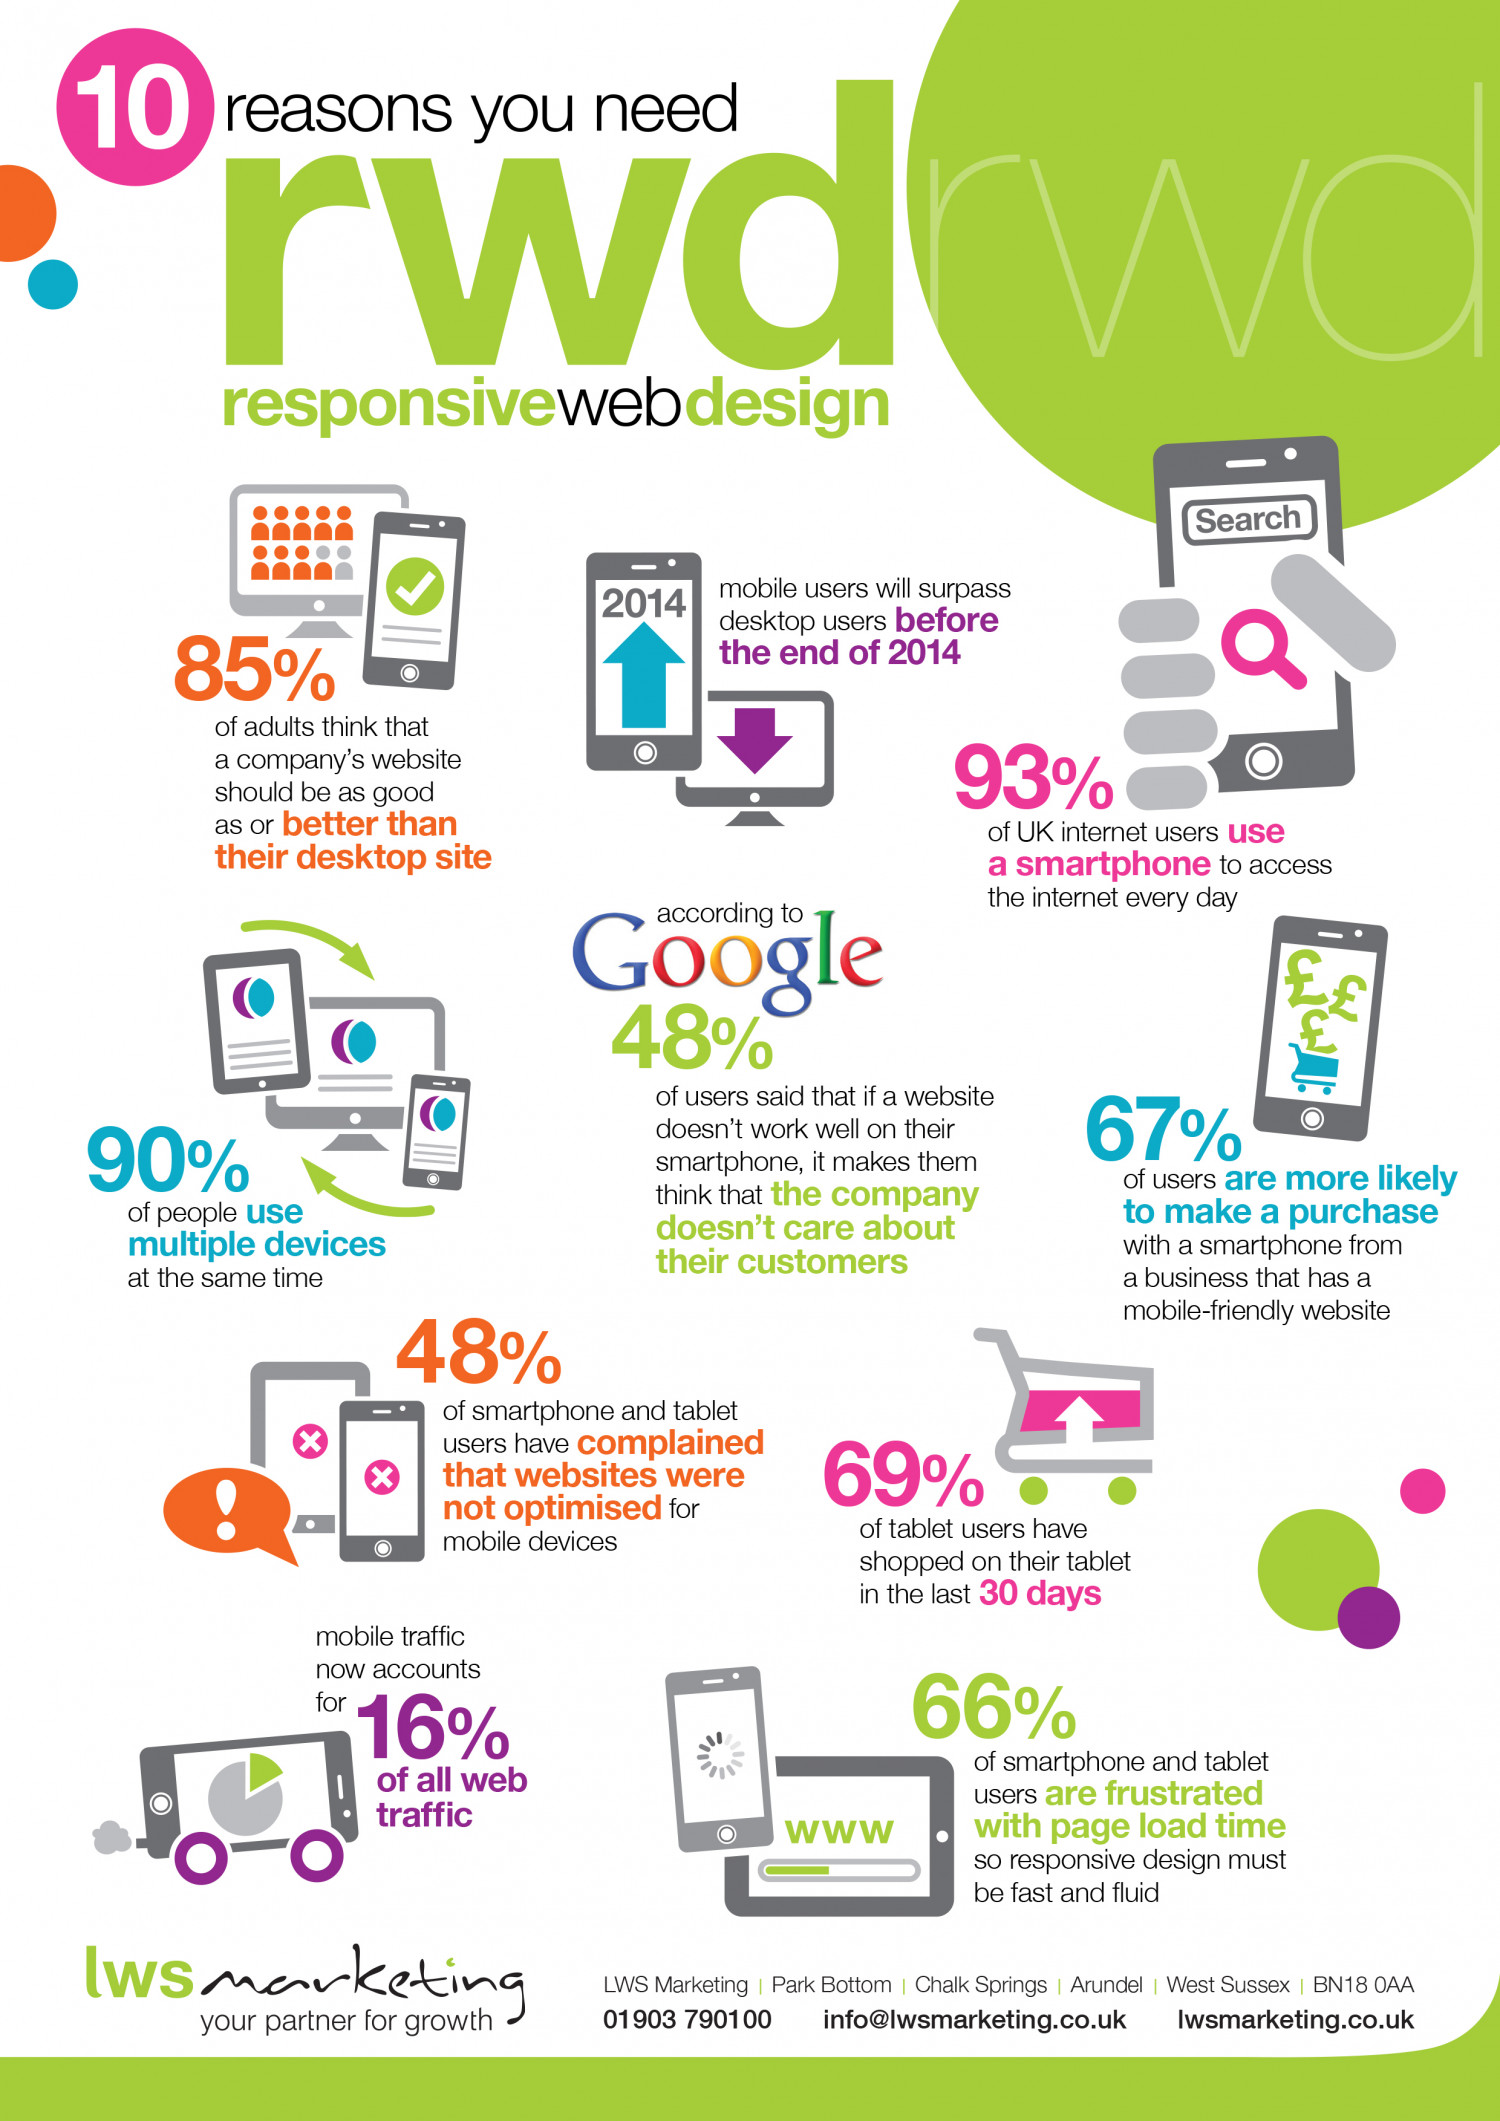 10 Reasons You Need Responsive Web Design Infographic